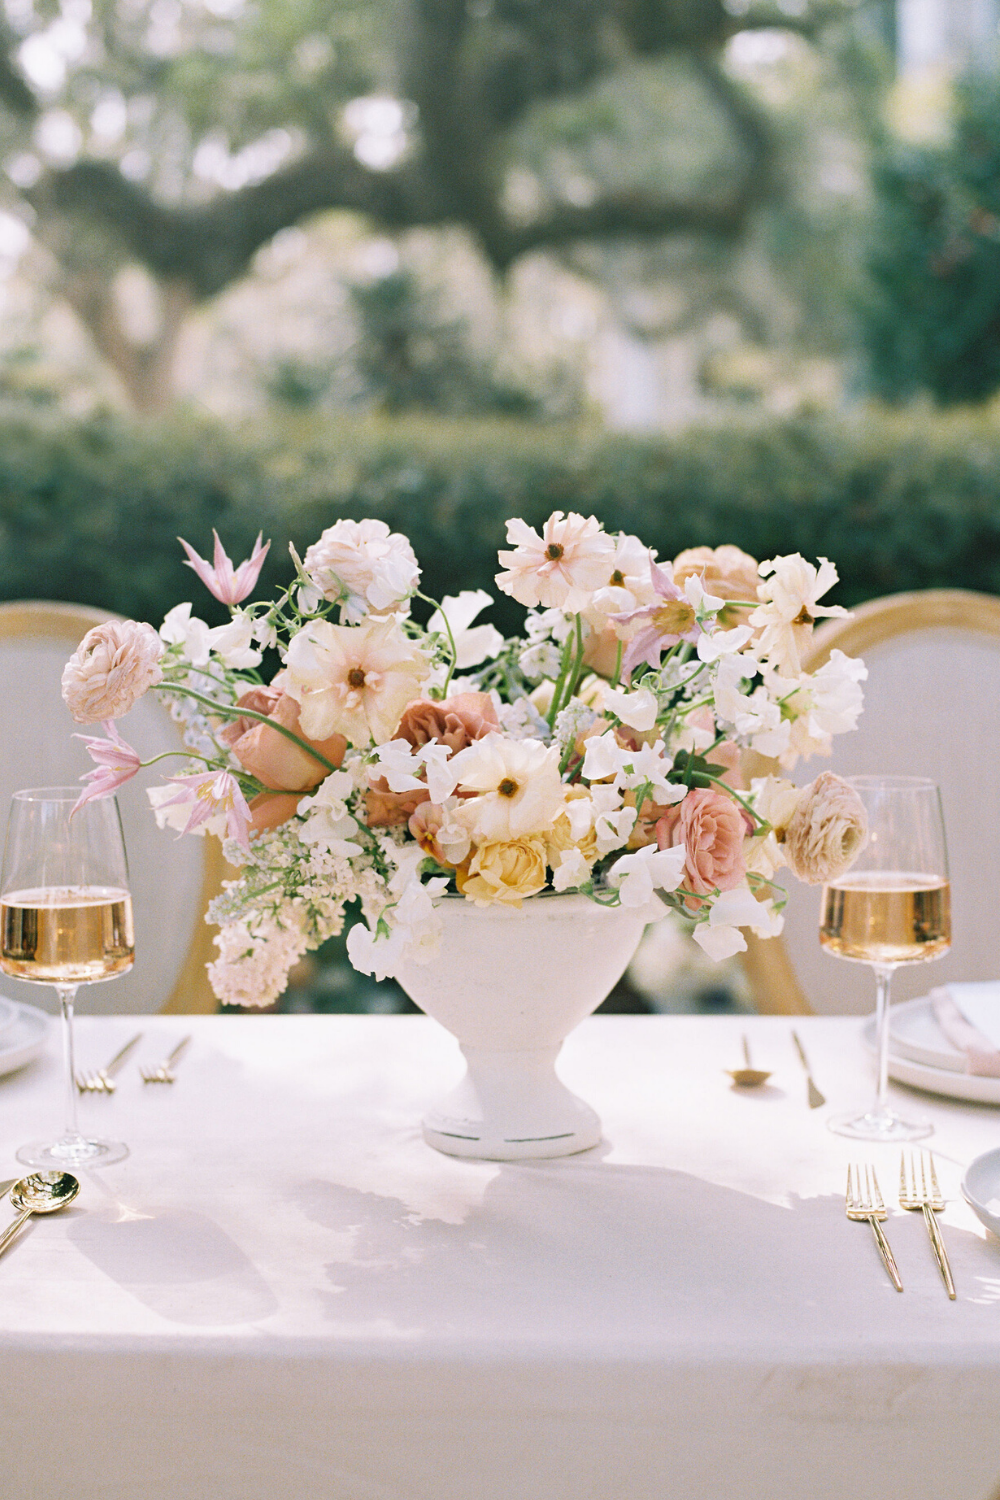 Sunset On The Seine By Claude Monet Inspired This Spring Wedding Editorial S Color Palette In 2020 Floral Arrangements Wedding Wedding Centerpieces Low Wedding Centerpieces